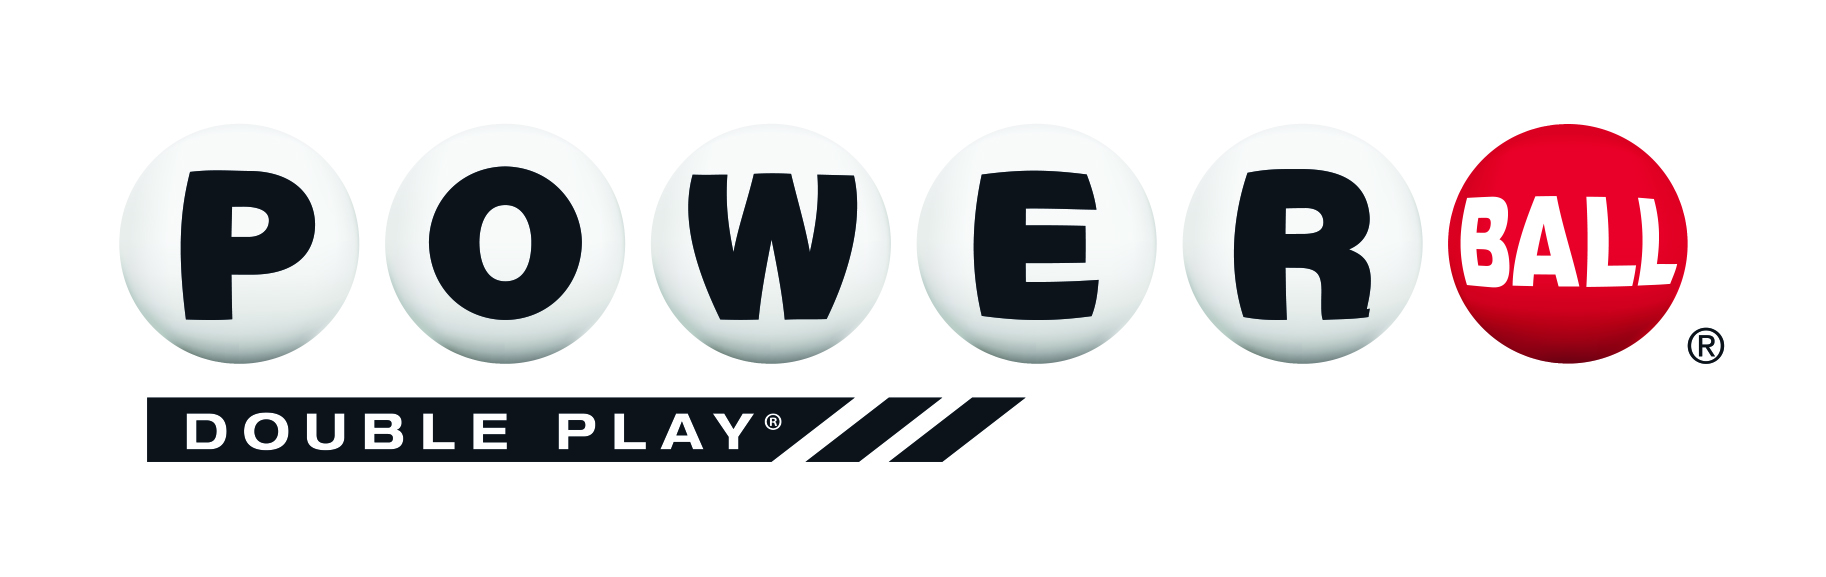 Powerball and Double Play logo